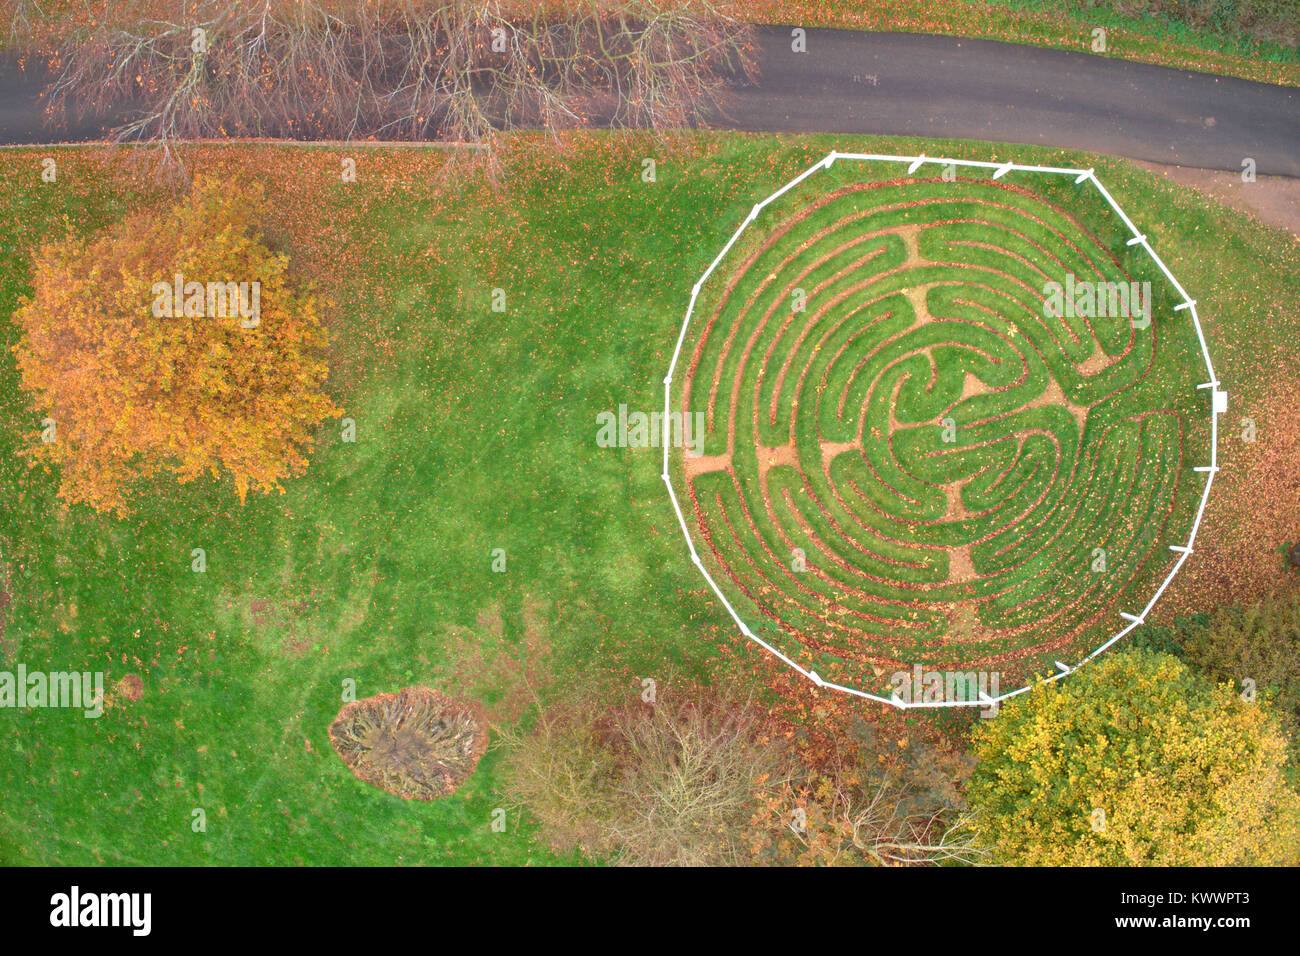 Drones view of the Turf Maze at Wing village, Rutland County, England, UK - Stock Image